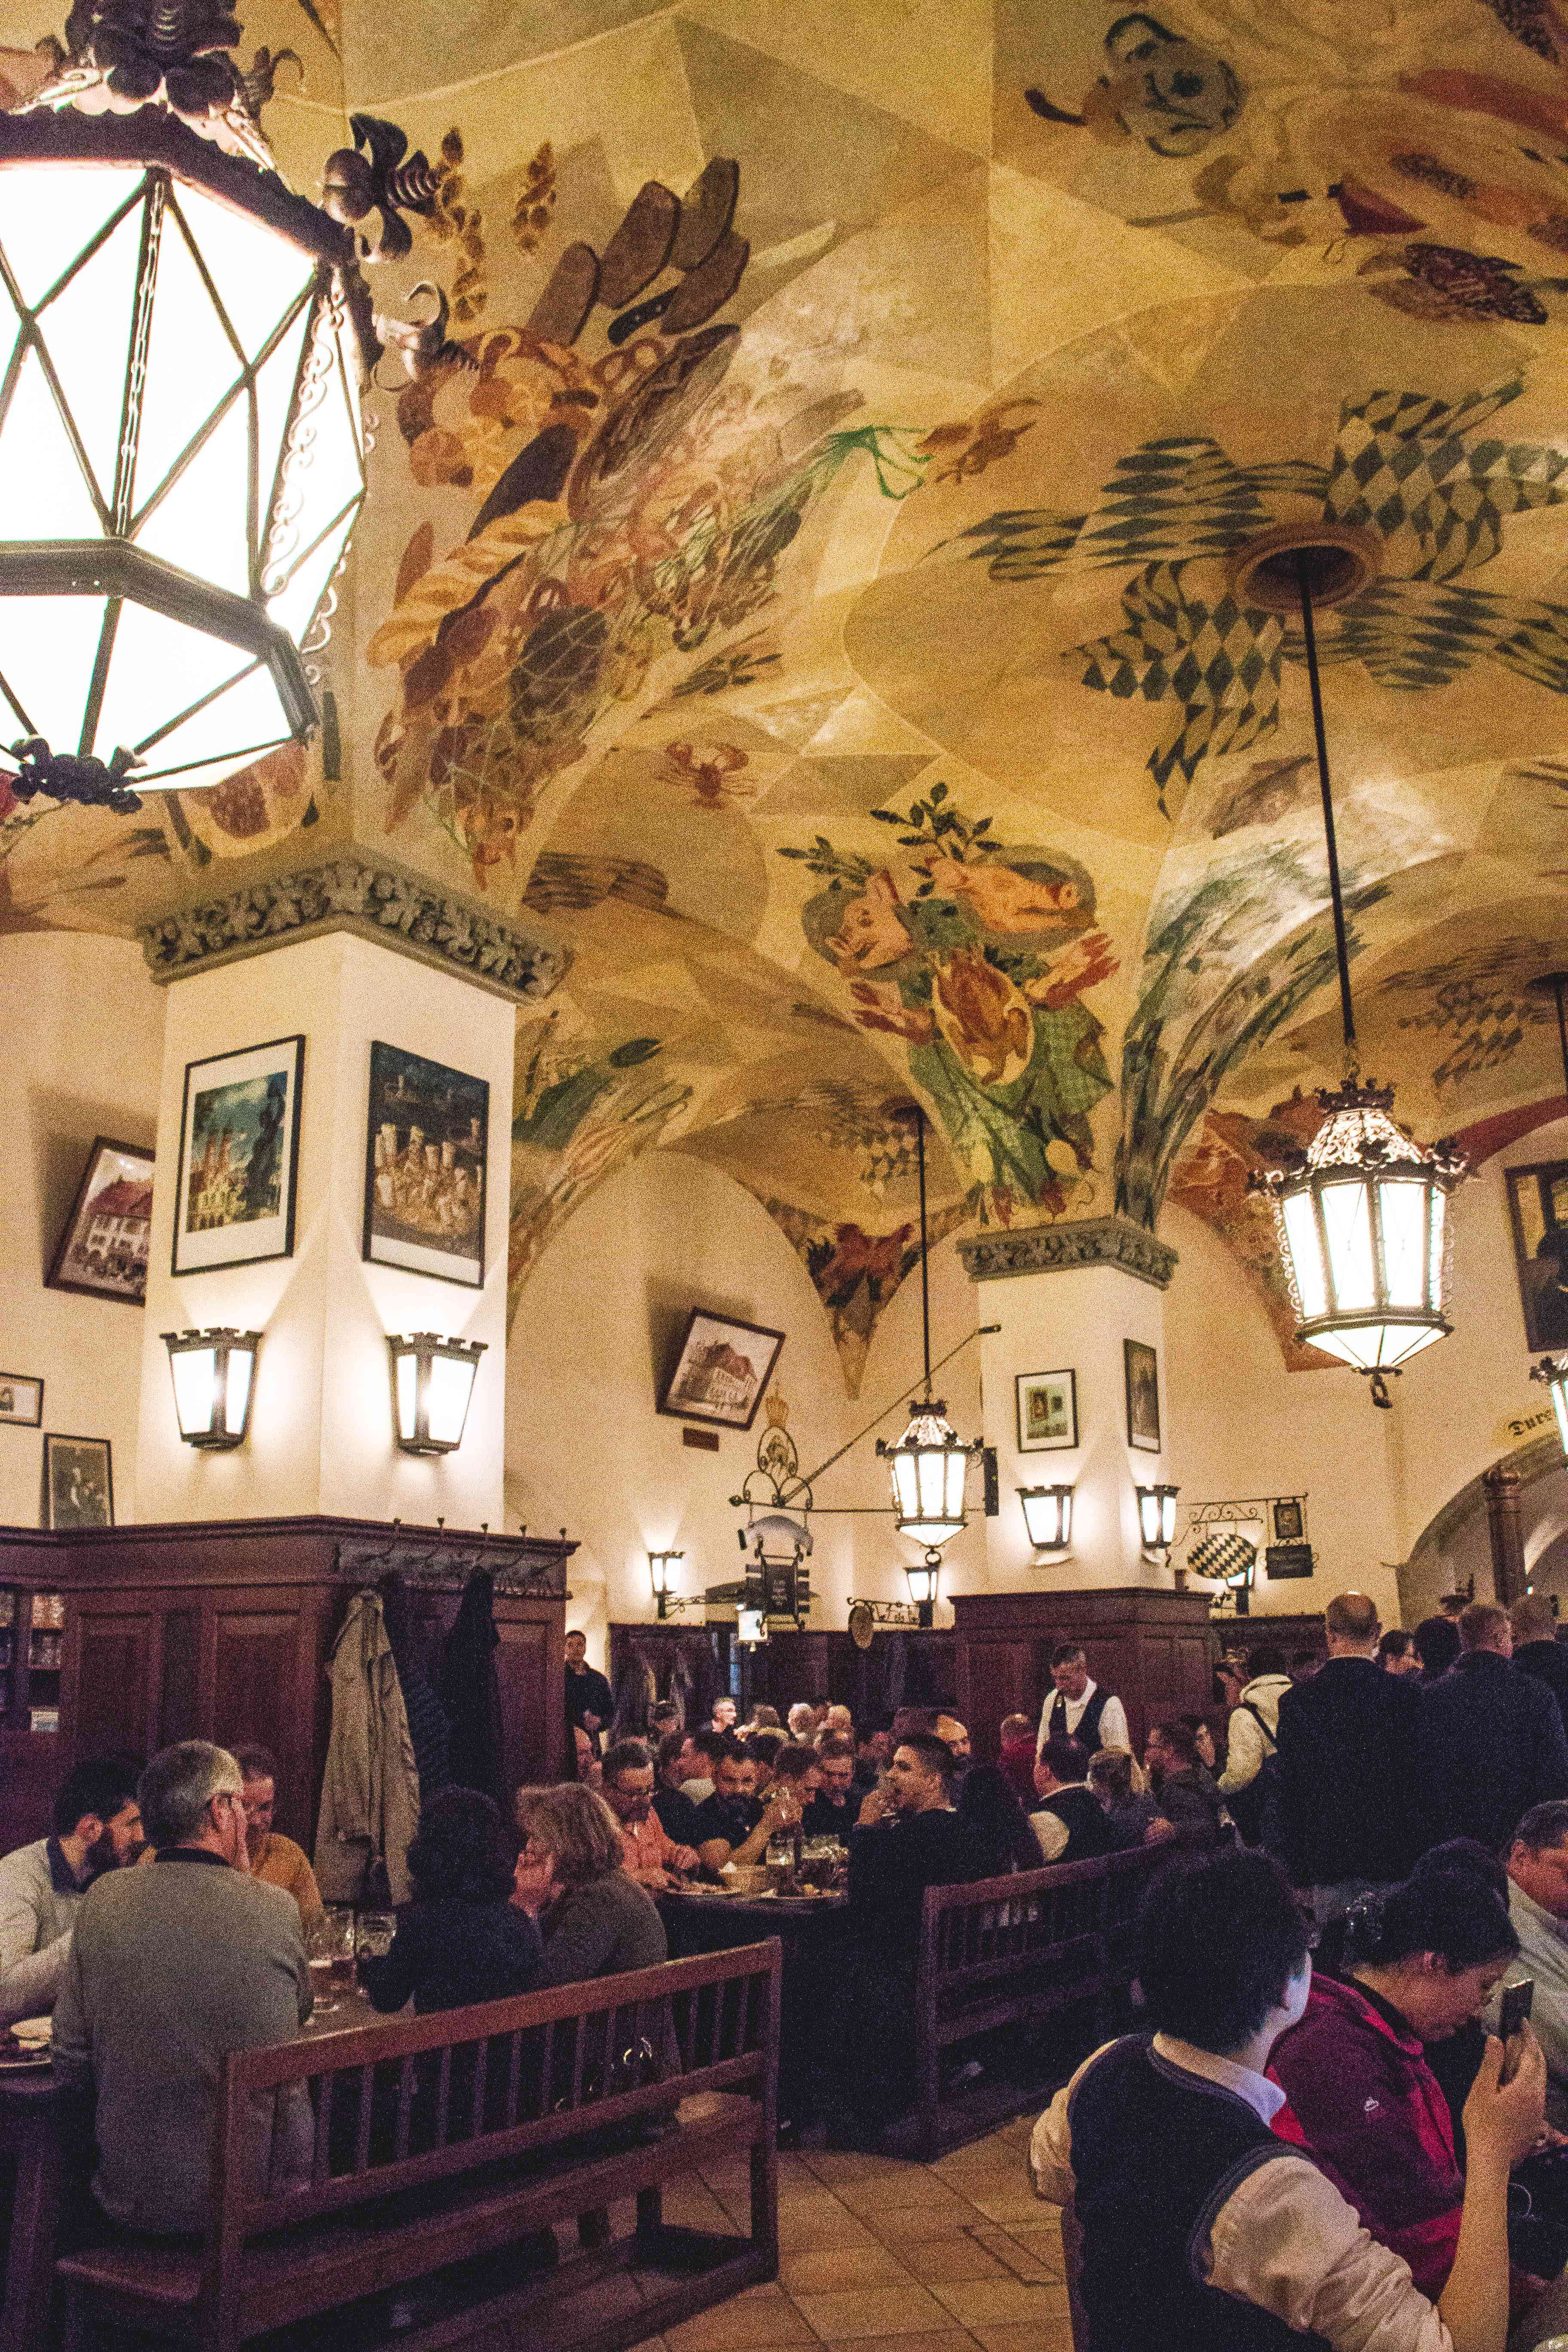 Inside the famous beer hall Hofbrauhaus in Munich